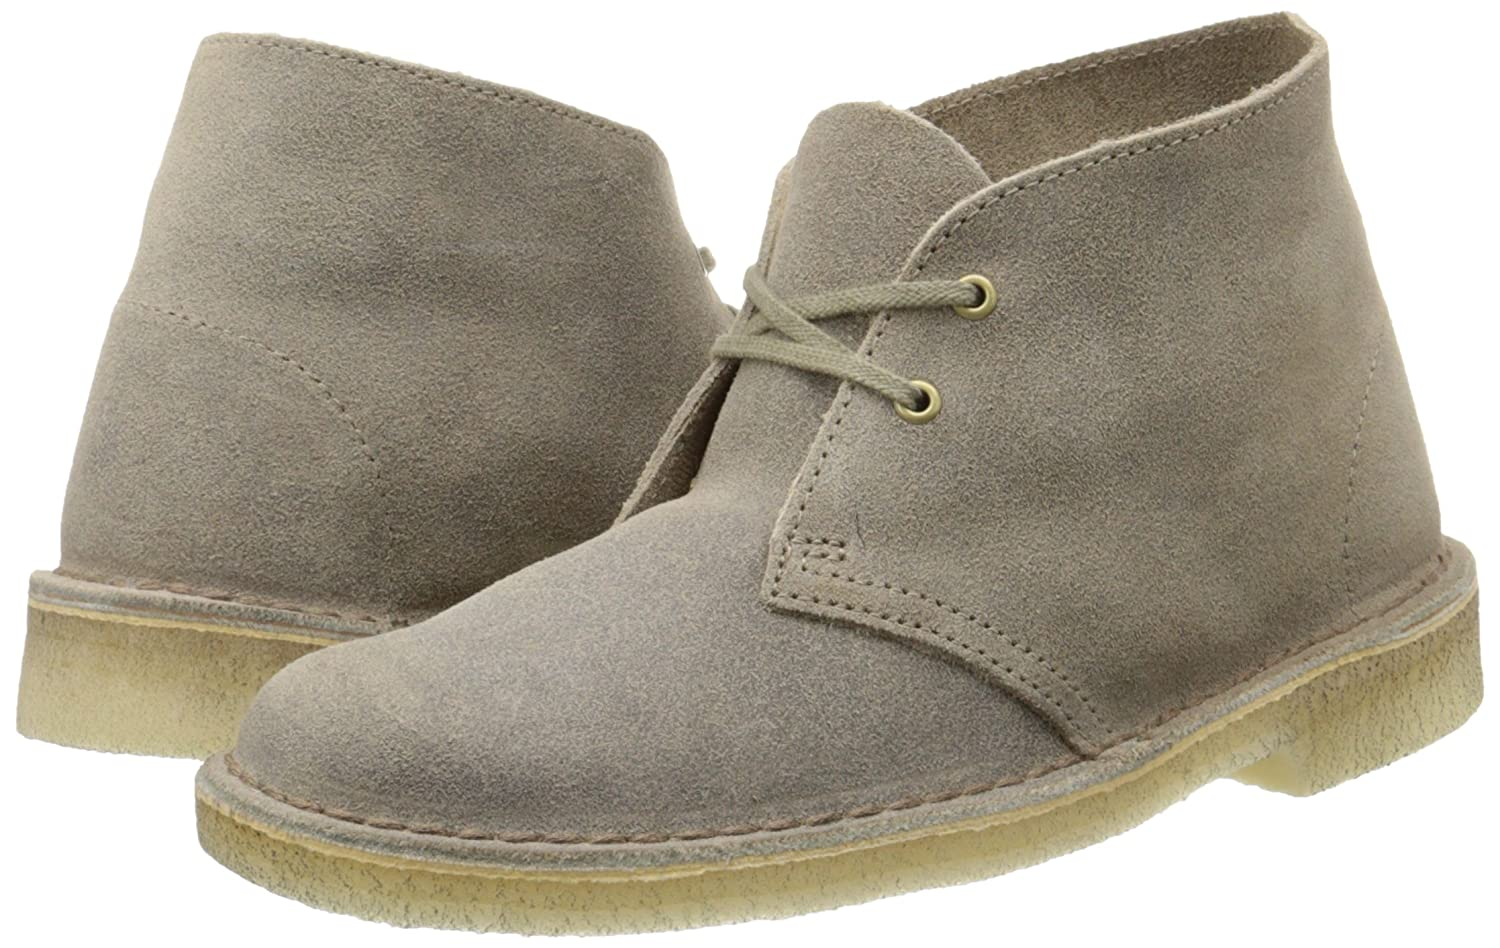 CLARKS Women's Desert 6.5 Boot Ankle Bootie B00UCVQGXC 6.5 Desert B(M) US|Taupe Distressed 2bd105